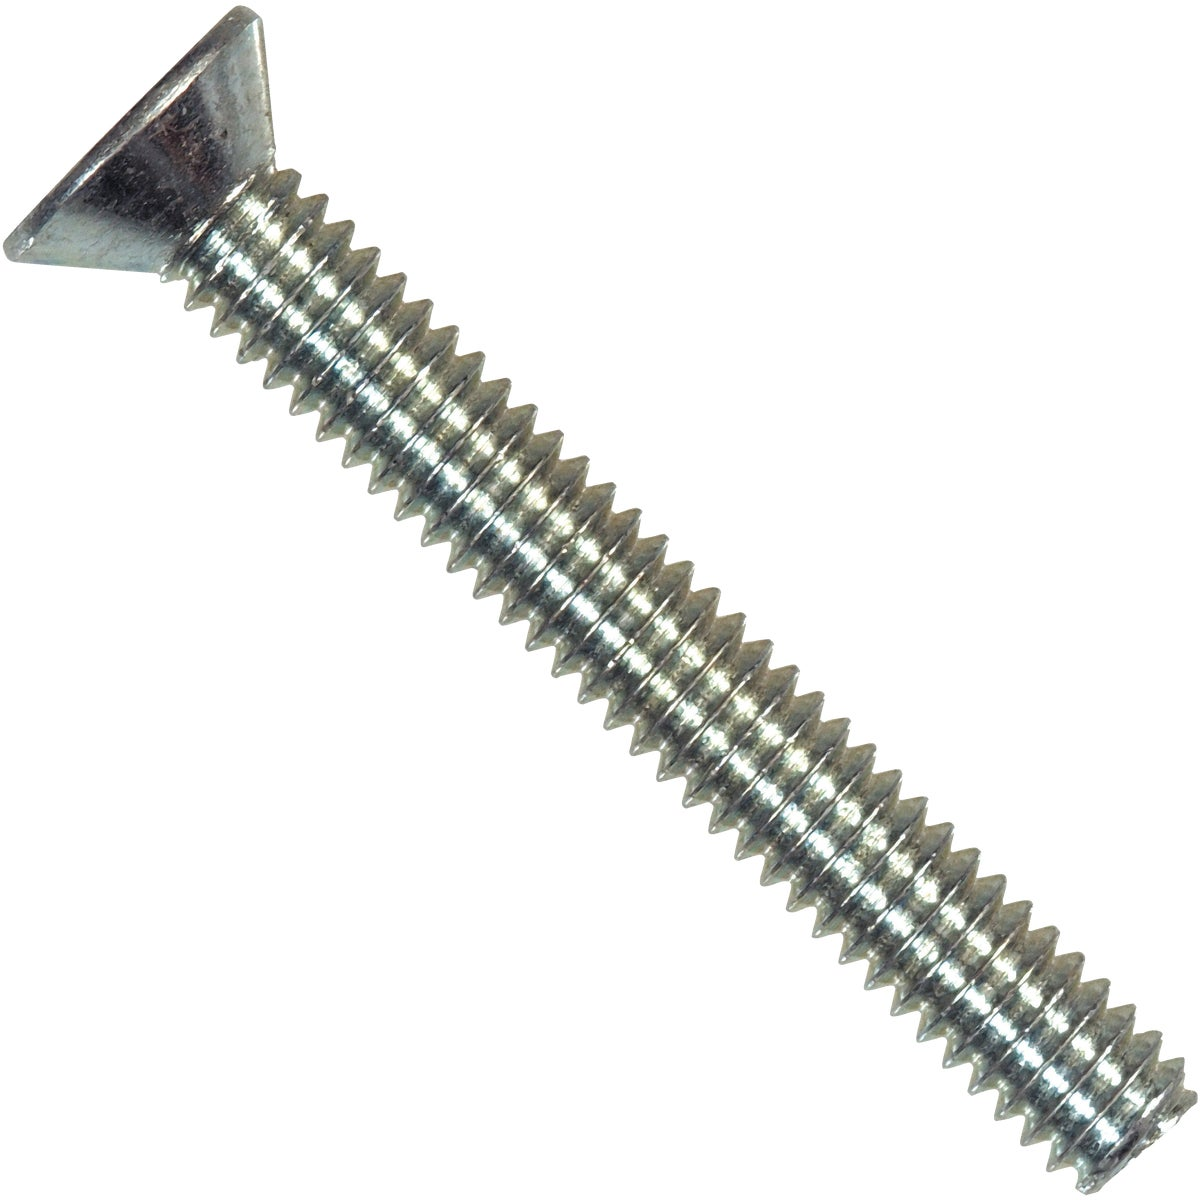 8-32X1-1/2 FH MACH SCREW - 101060 by Hillman Fastener